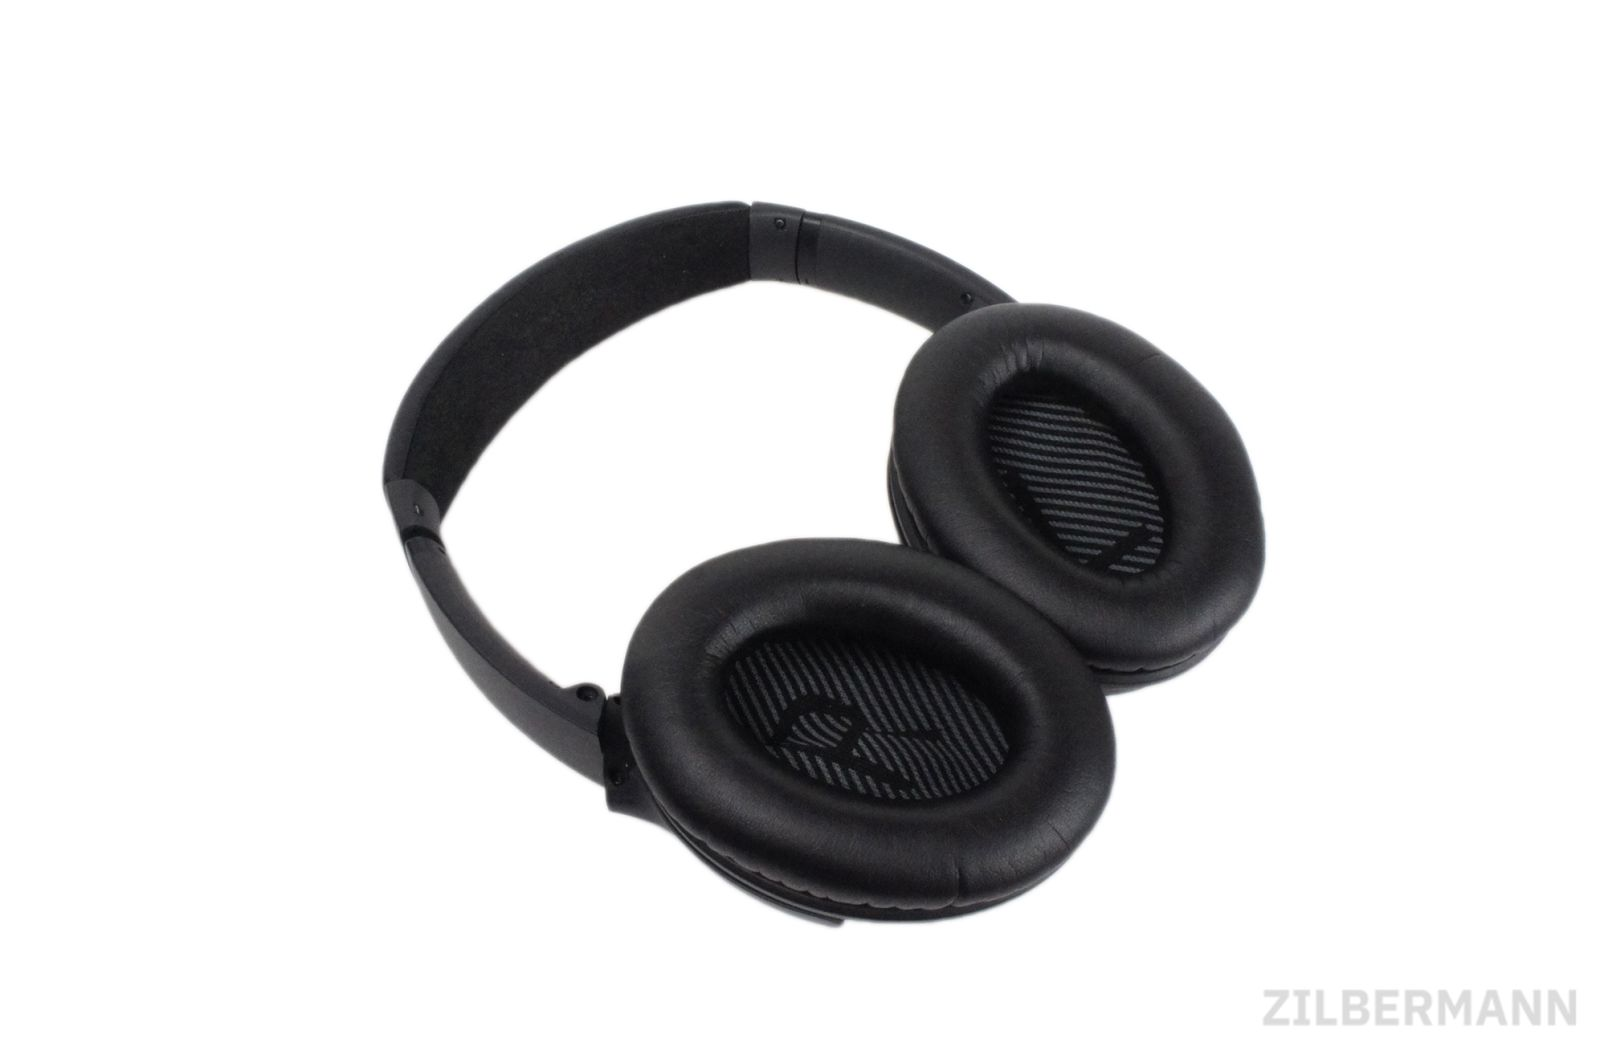 Bose_QuietComfort_35_QC_35_Kopfhorer_03